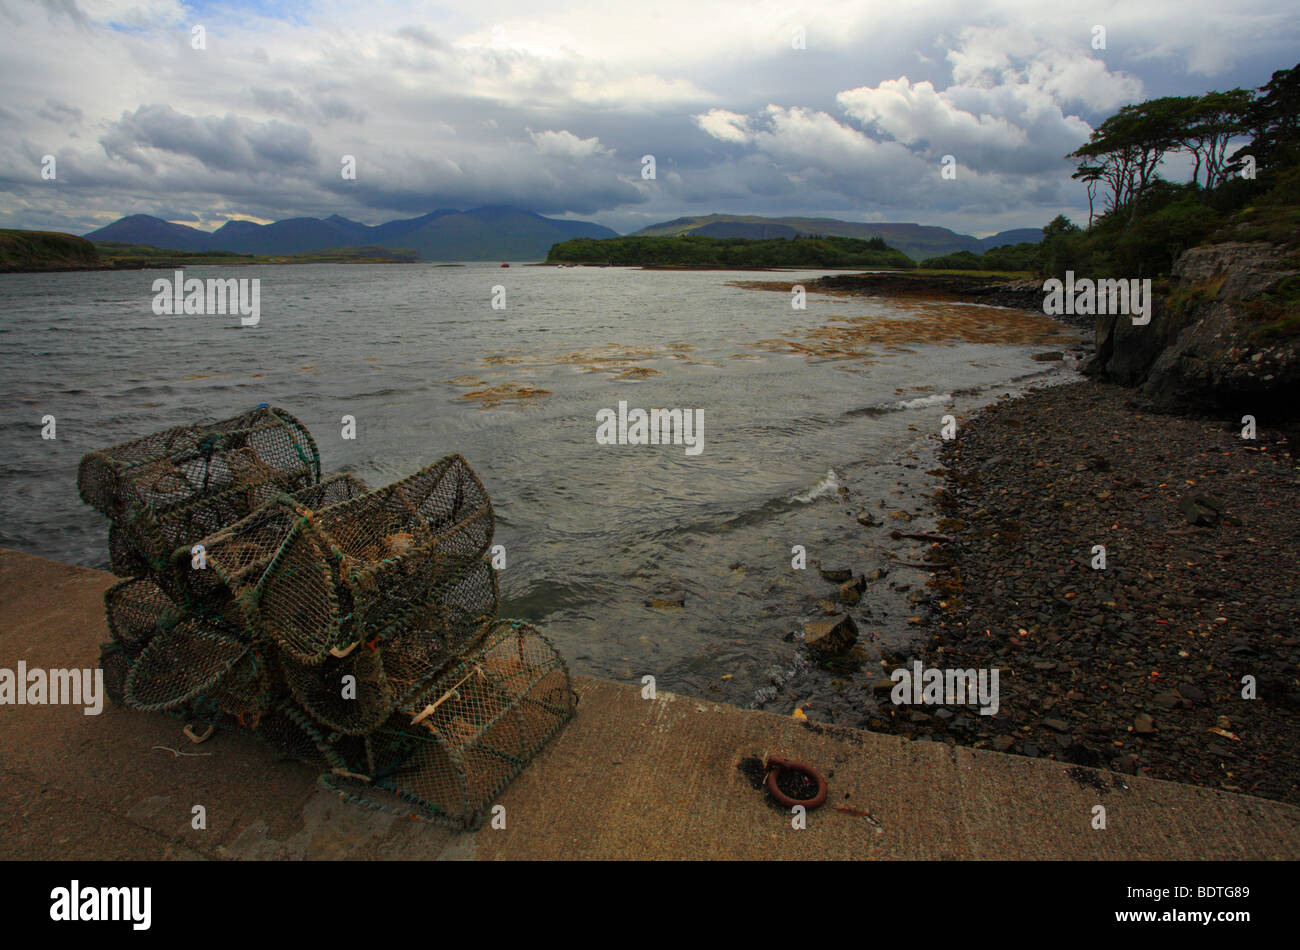 A view from the Ulva ferry jetty down the Sound of Ulva, looking towards Ben More on the Isle of Mull. - Stock Image